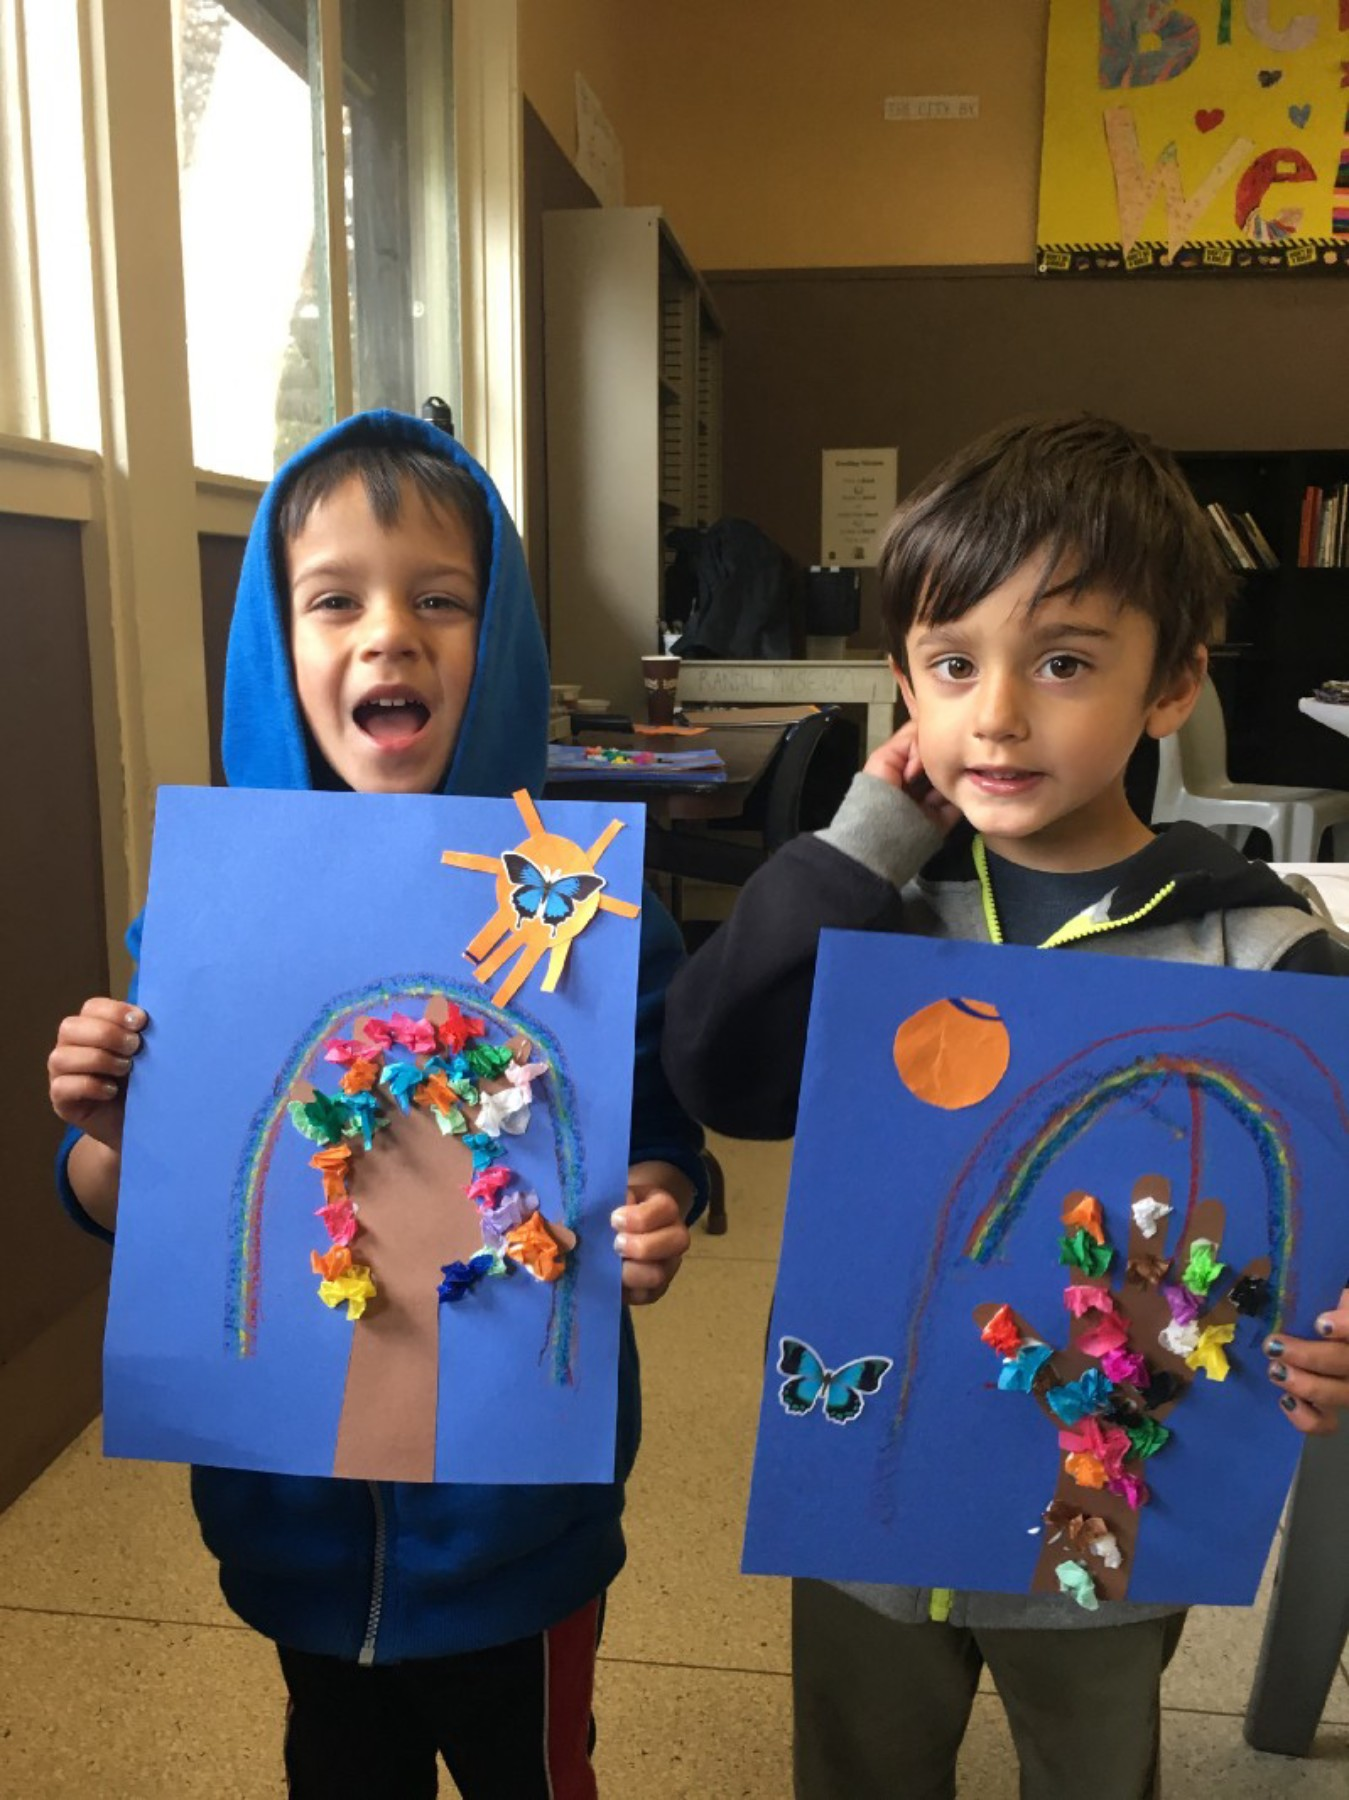 Tiny Artists - Two Boys with their Mixed Media Projects